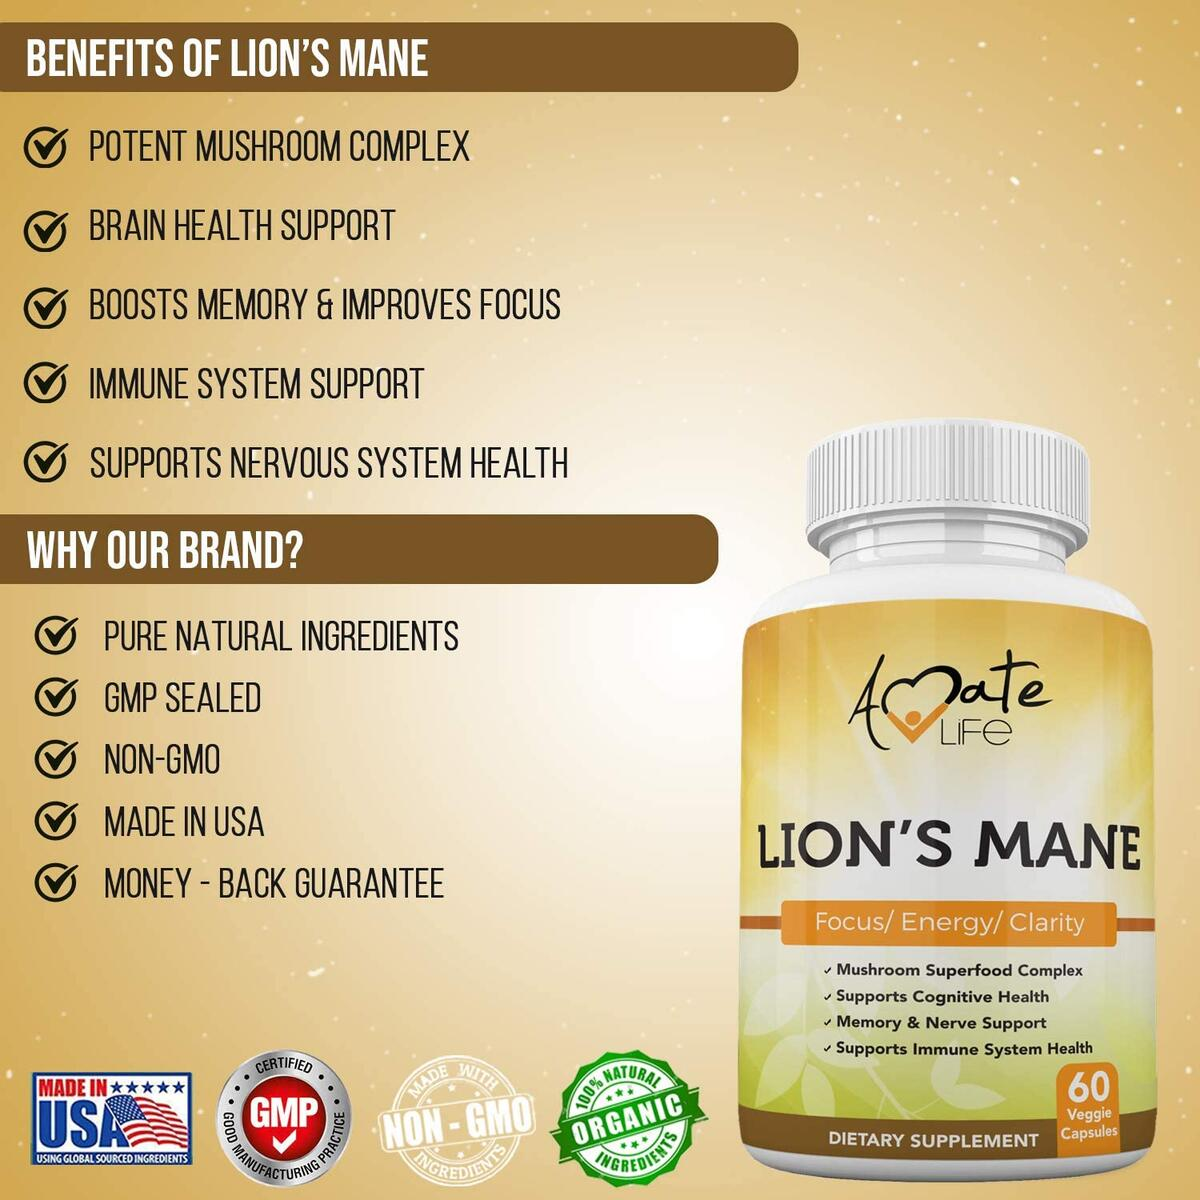 Lions Mane Mushroom Supplement Capsules Powerful Nootropic Mushroom Supplement for Focus, Mental Clarity, Memory, Brain Health & Immune Support 60 Vegetable Capsules Made in USA by Amate Life